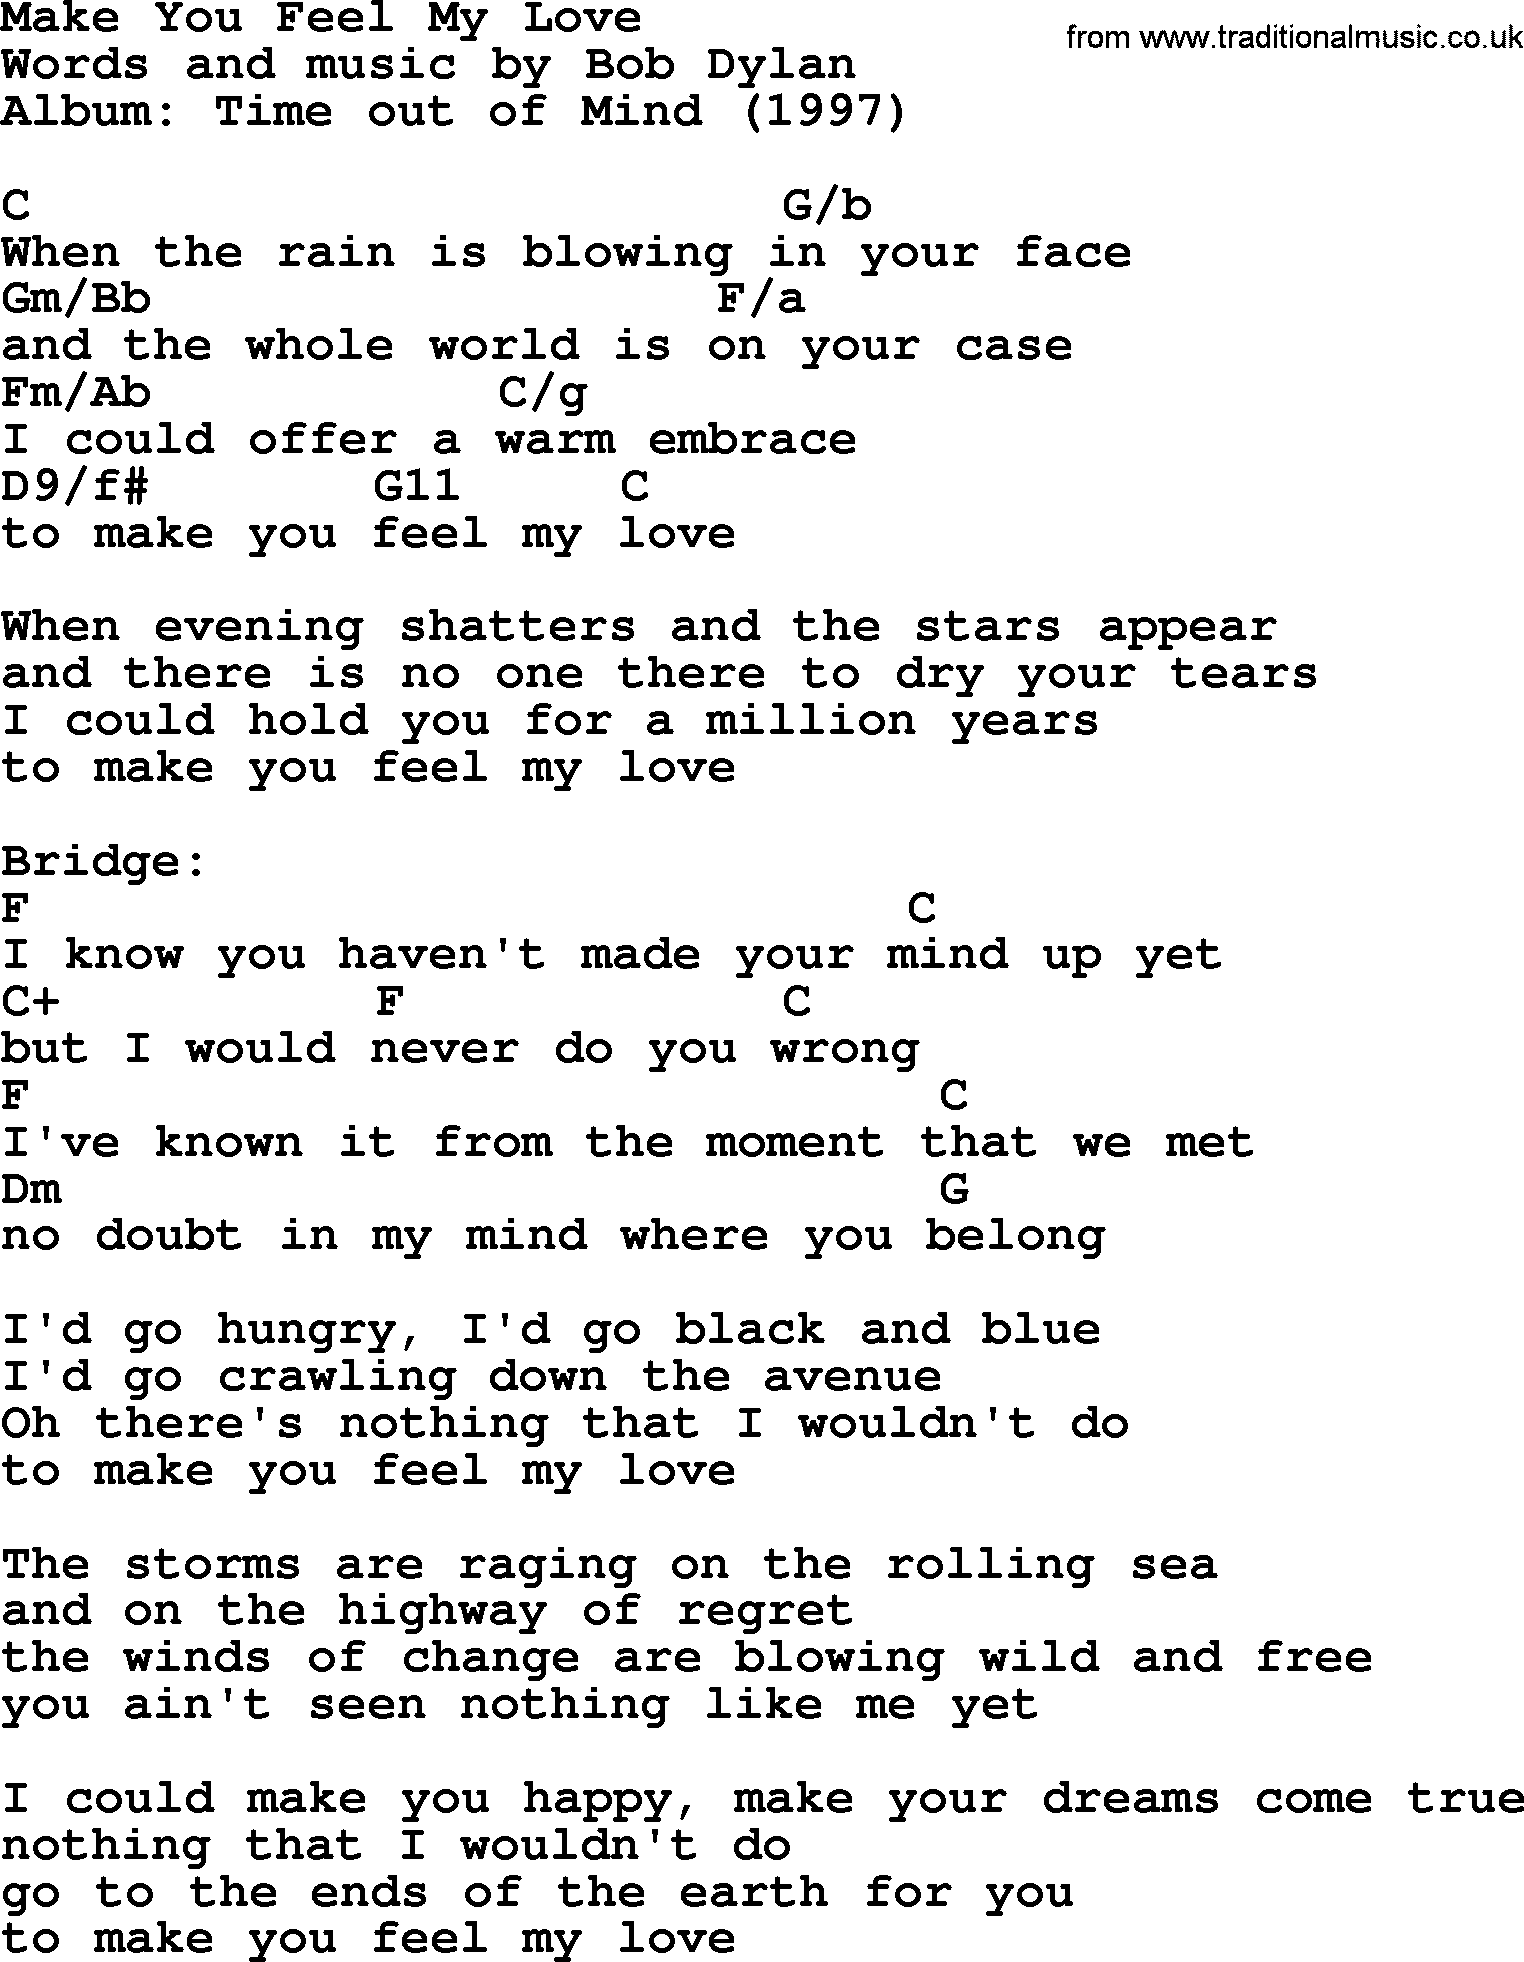 Bob dylan song make you feel my love lyrics and chords bob dylan song lyrics with chords make you feel my love hexwebz Image collections